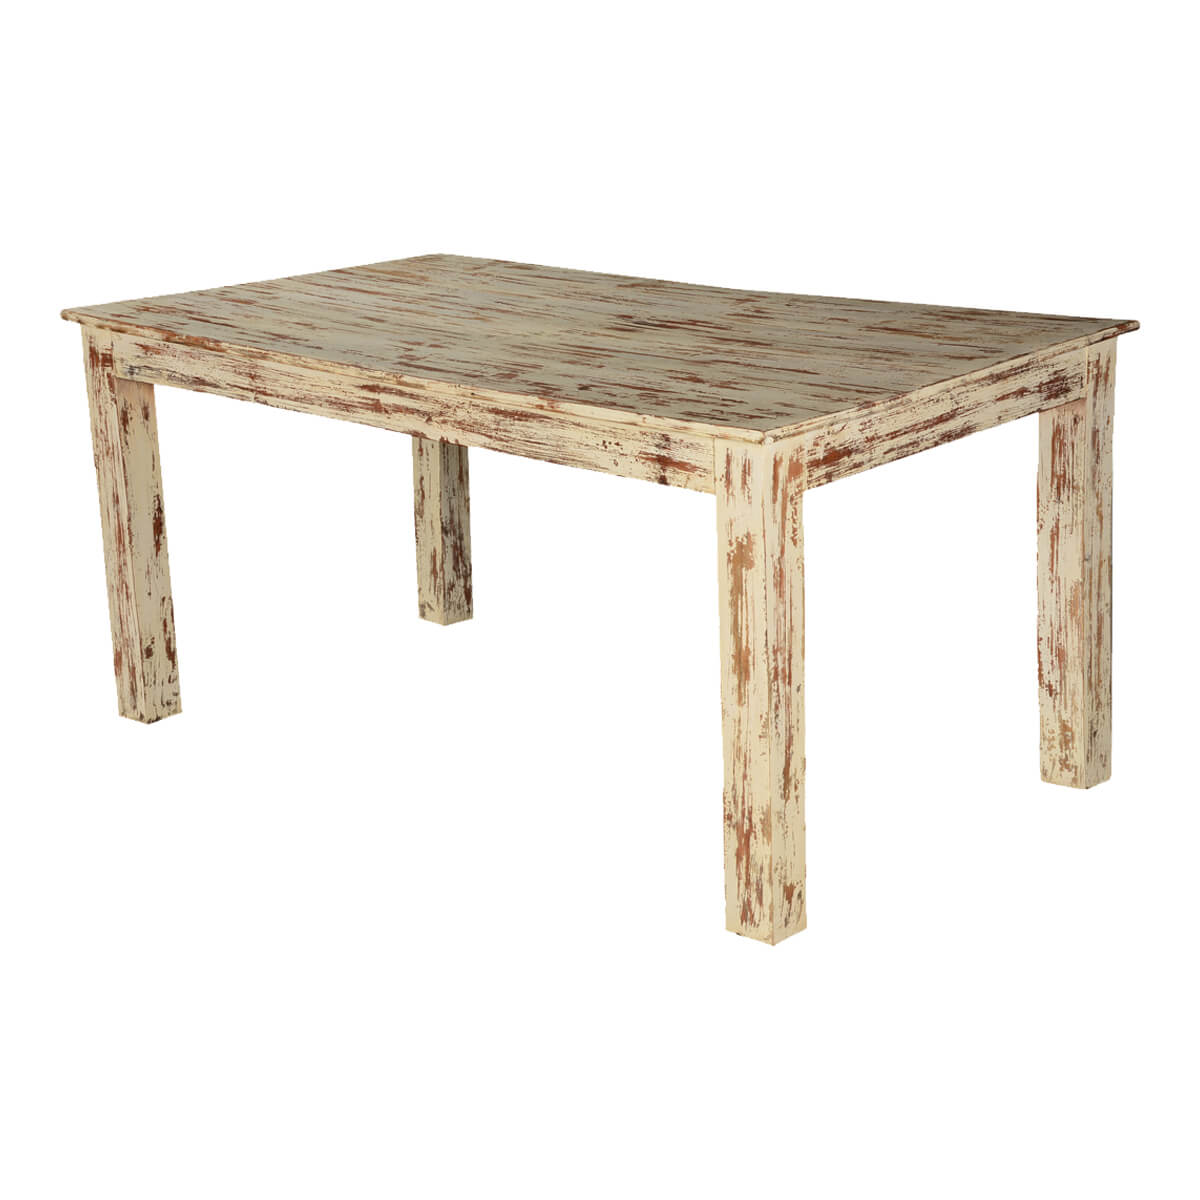 Rustic white brown speckled mango wood 63 kitchen dining table - Rustic wooden kitchen table ...